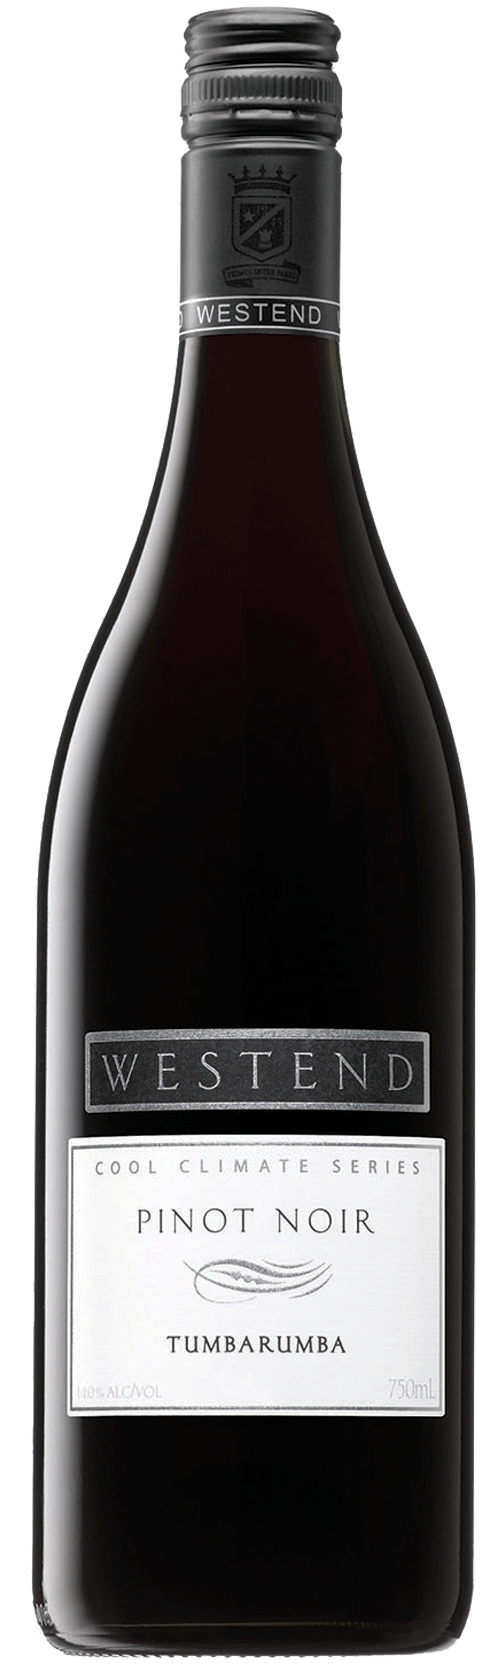 Westend Cool Climate Series Pinot Noir 2009